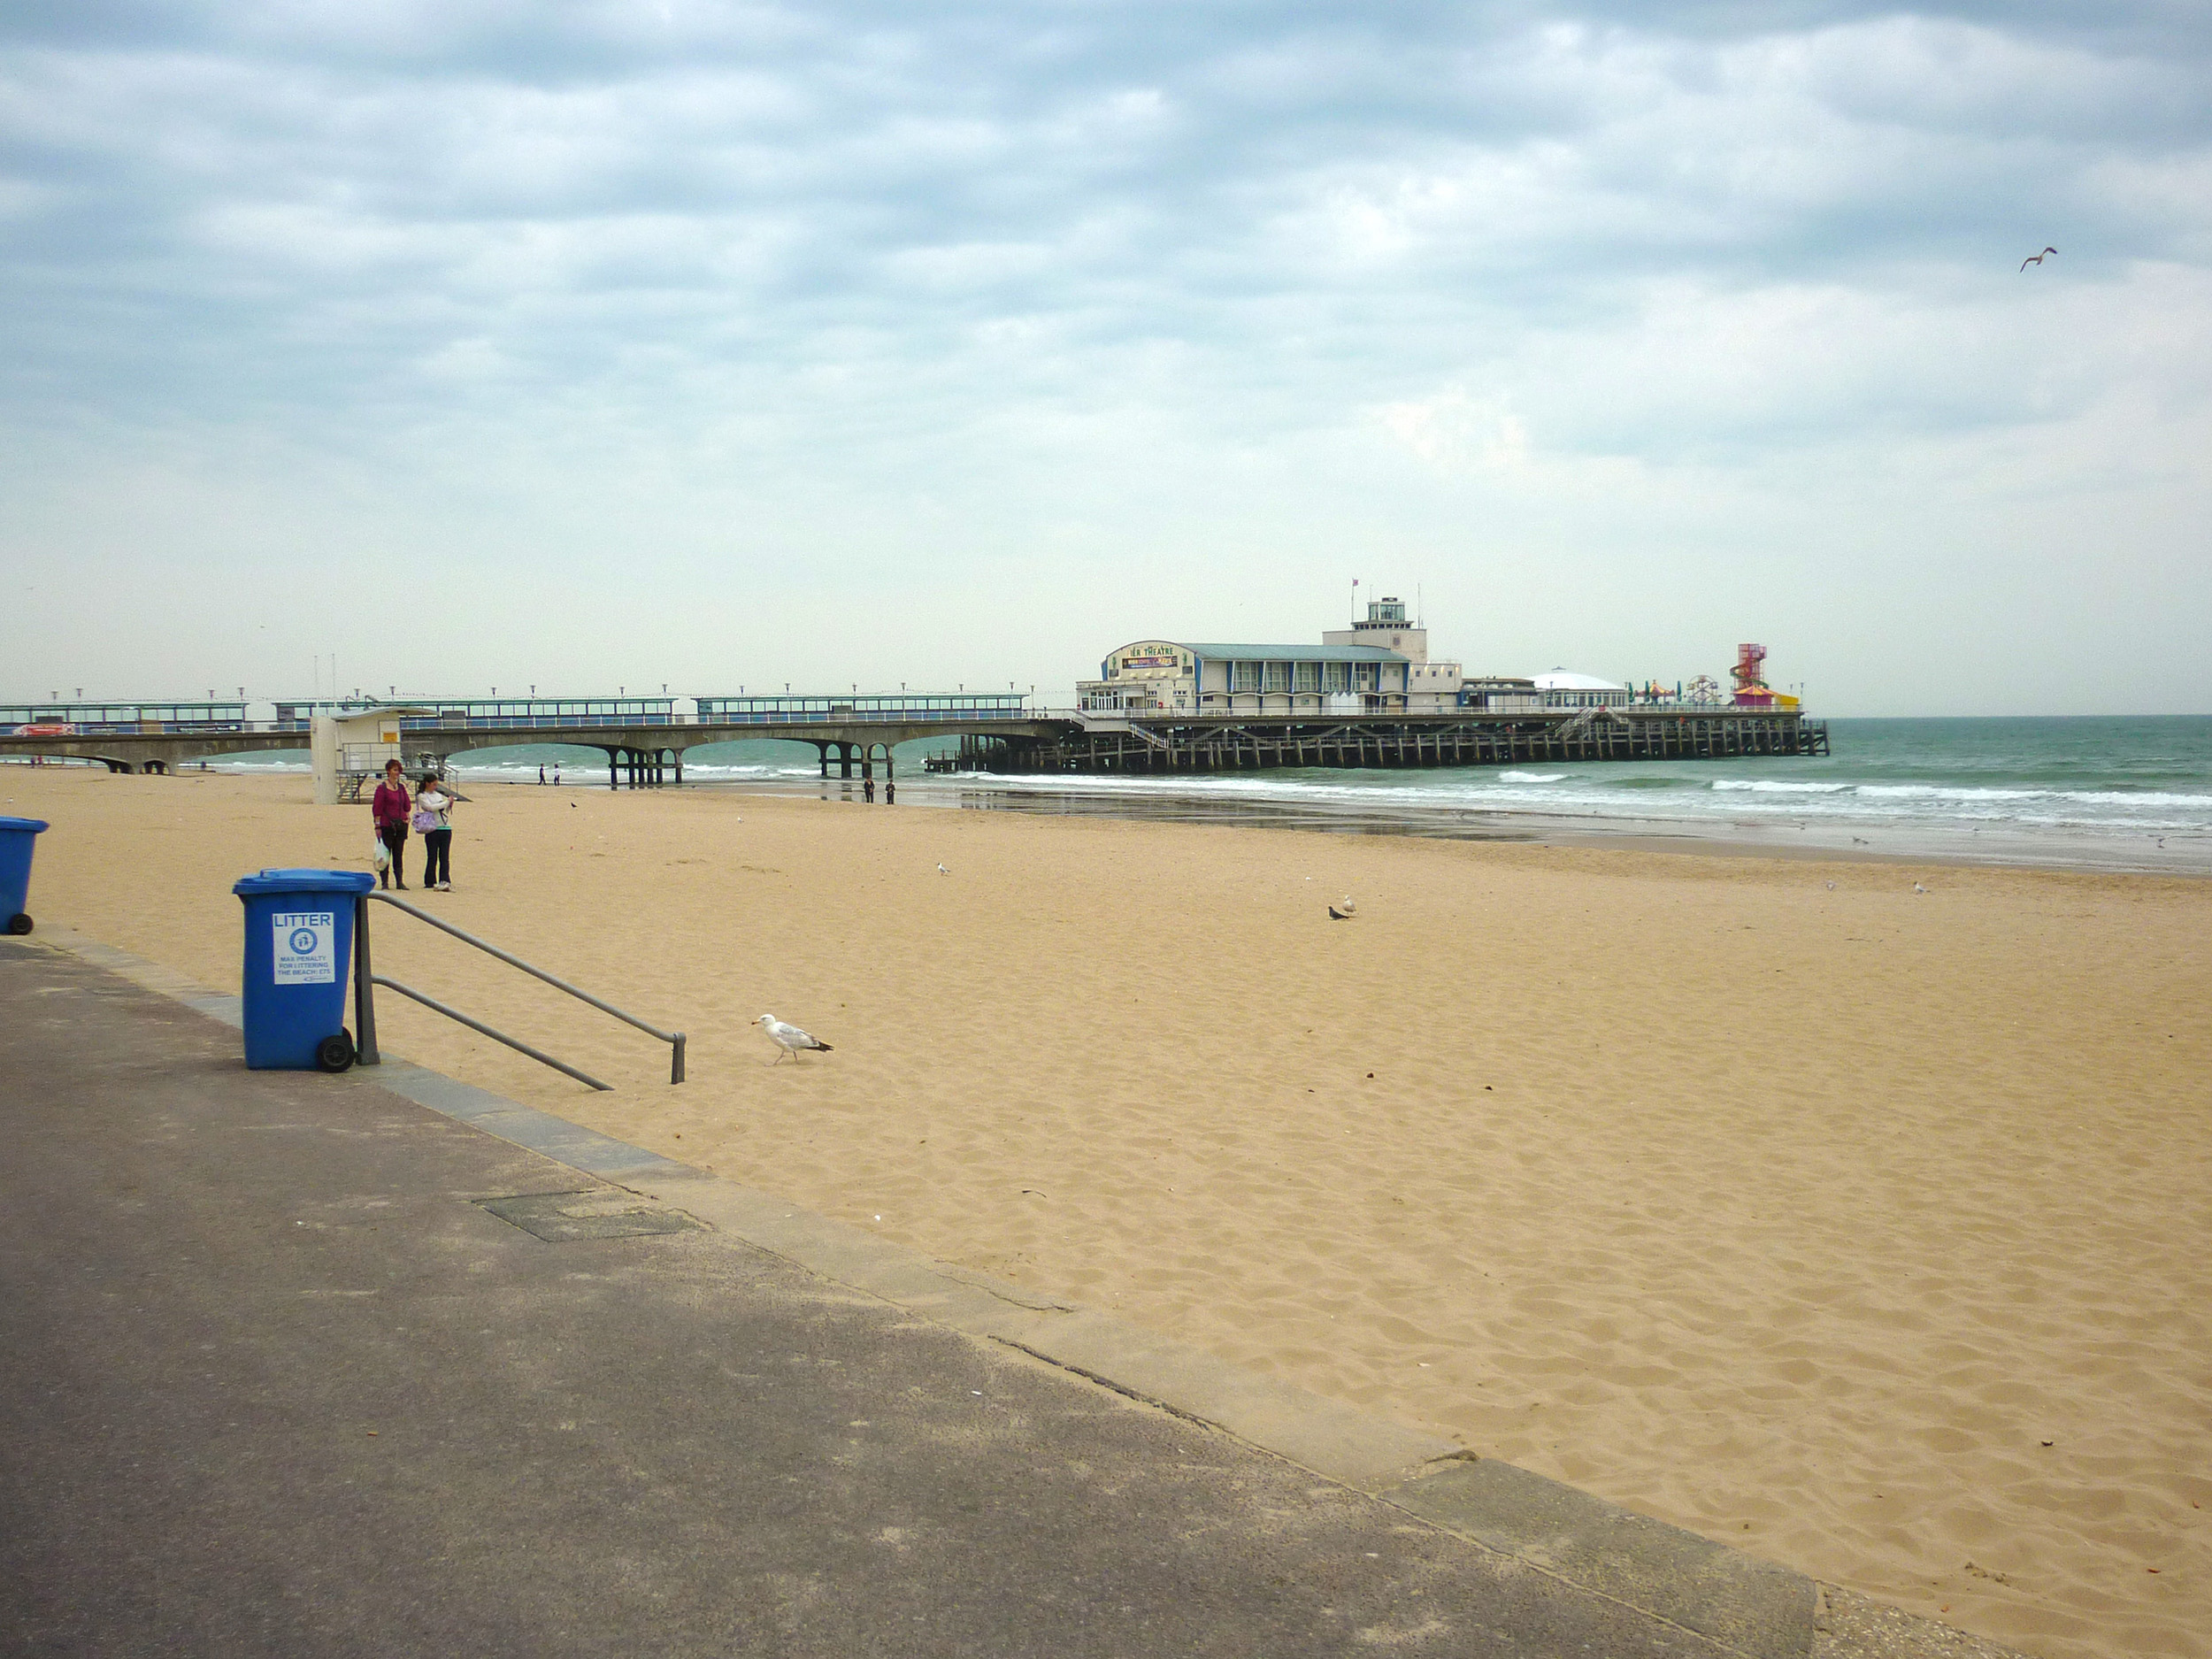 pier and beach at the holiday town of bournemouth, dorset